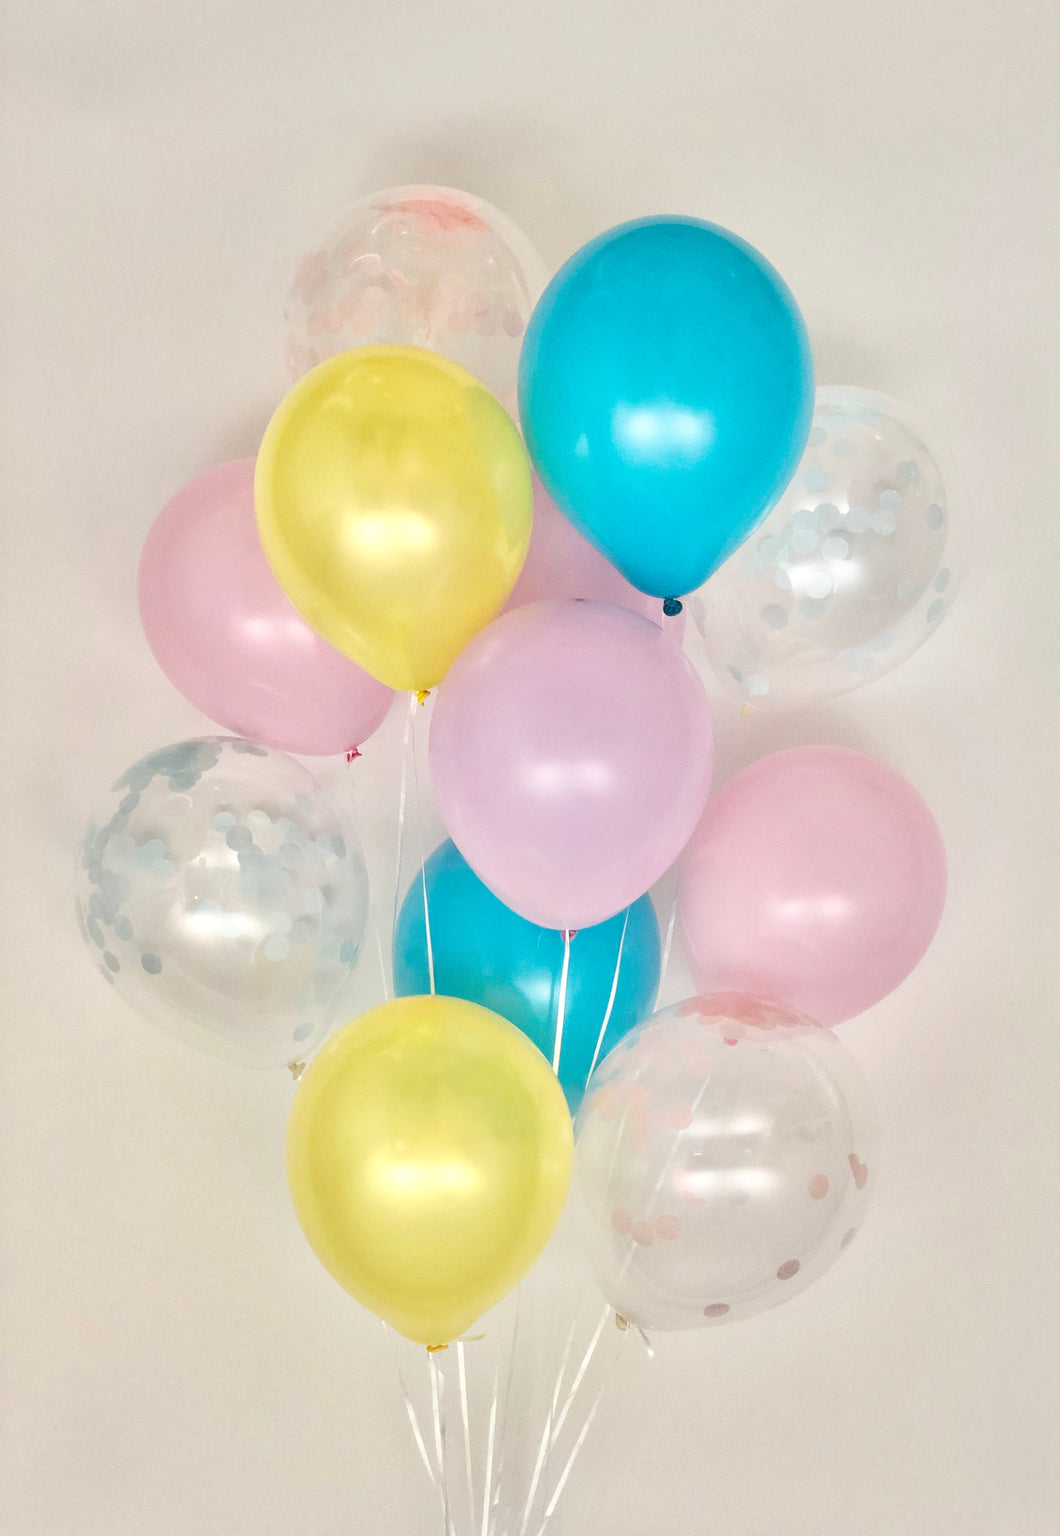 Sweet Moon 12 Piece Latex Balloons Bouquet (Colorful)